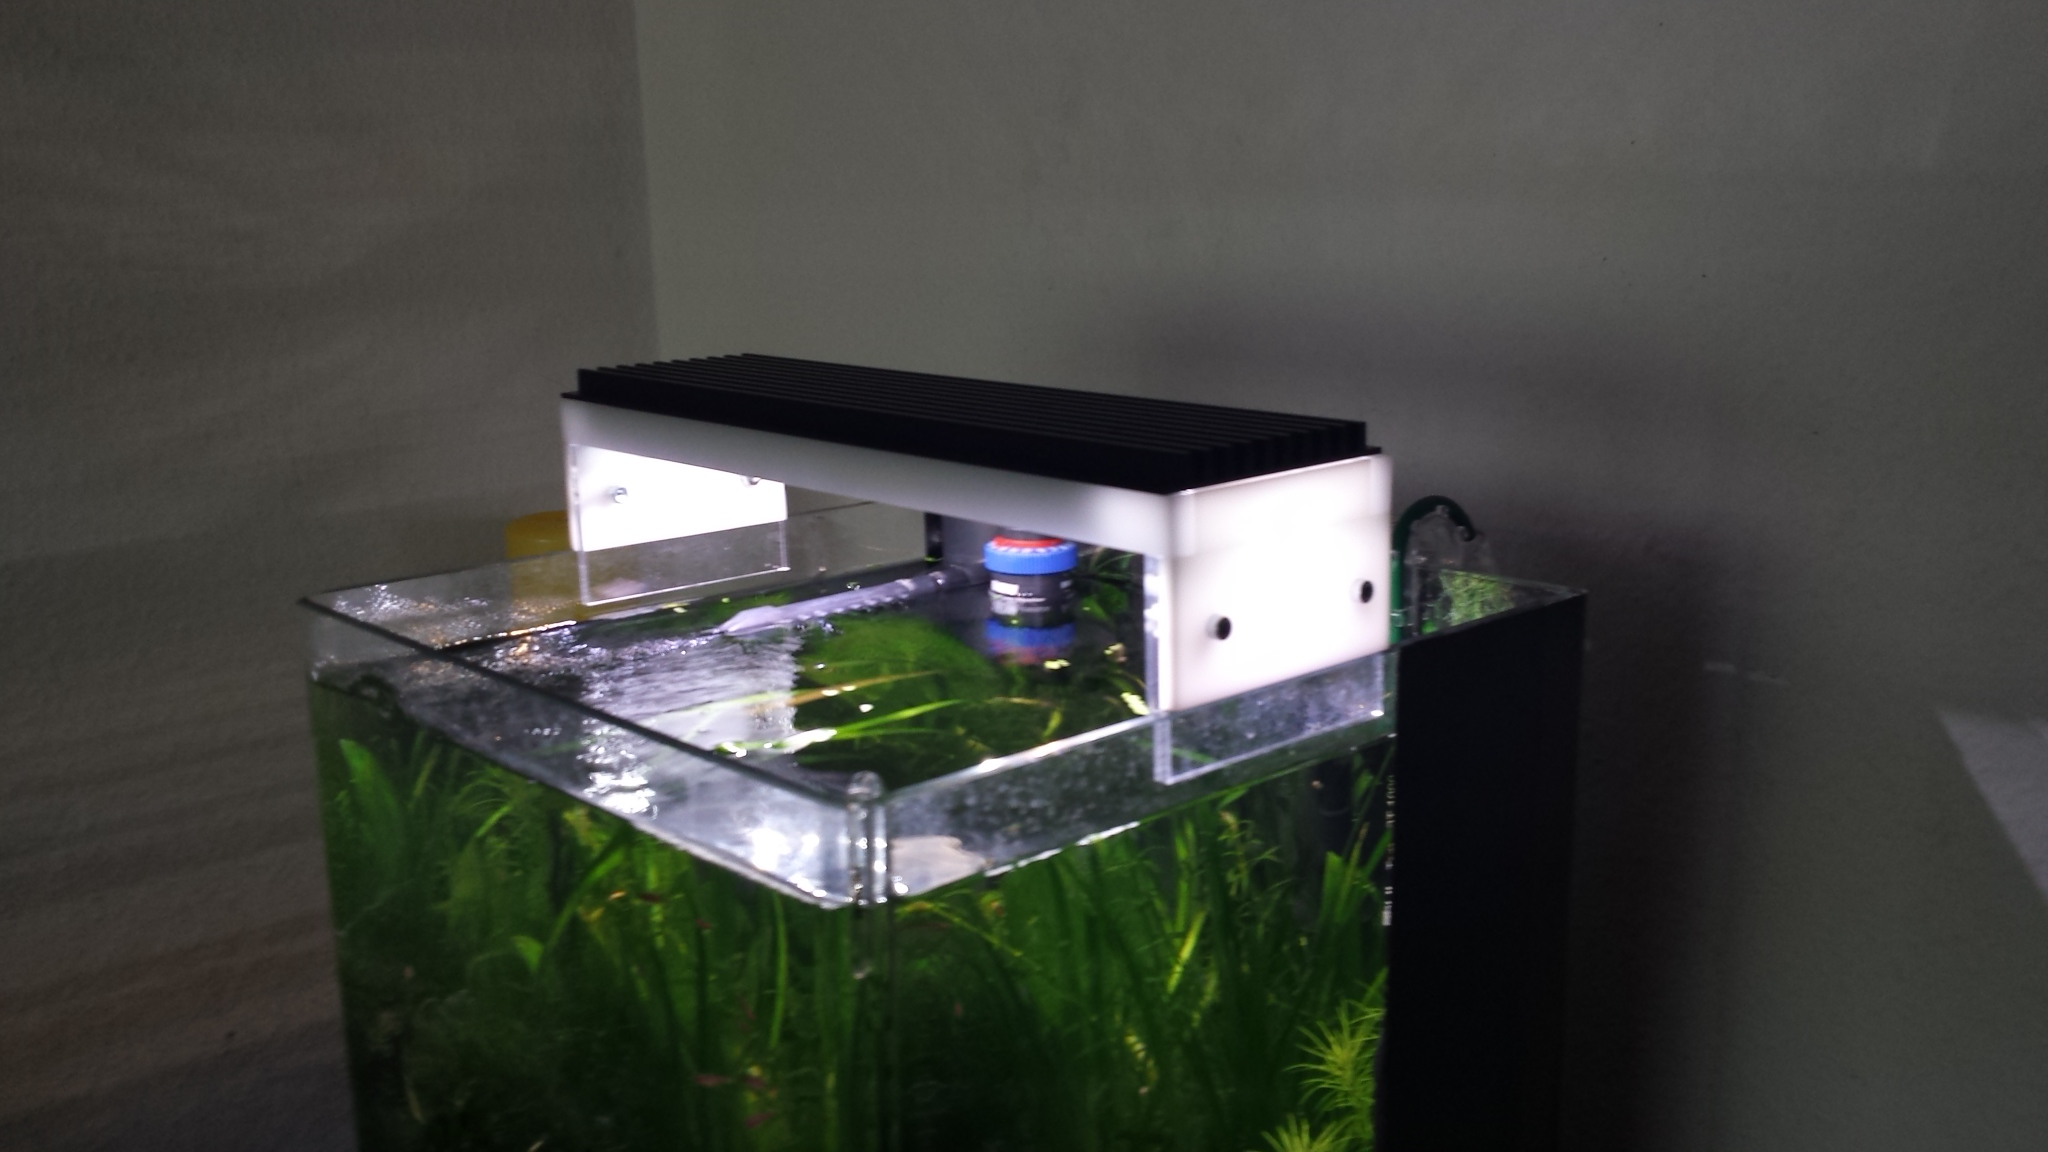 diy led lampe selber bauen seite 33 aquariumbeleuchtung aquascaping forum. Black Bedroom Furniture Sets. Home Design Ideas